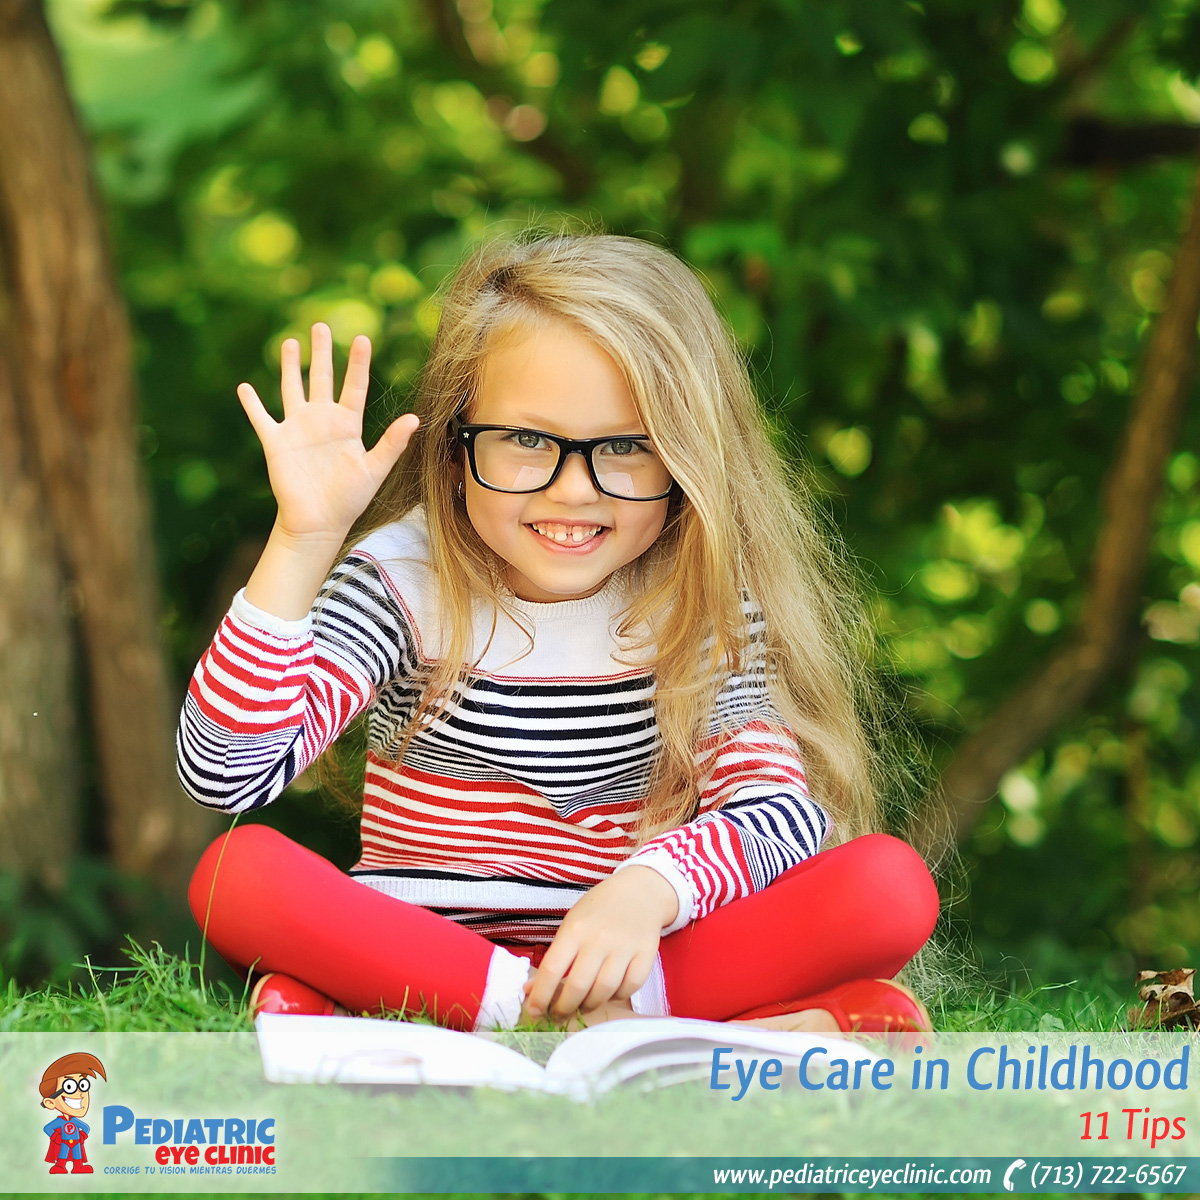 17-eye-care-in-childohood